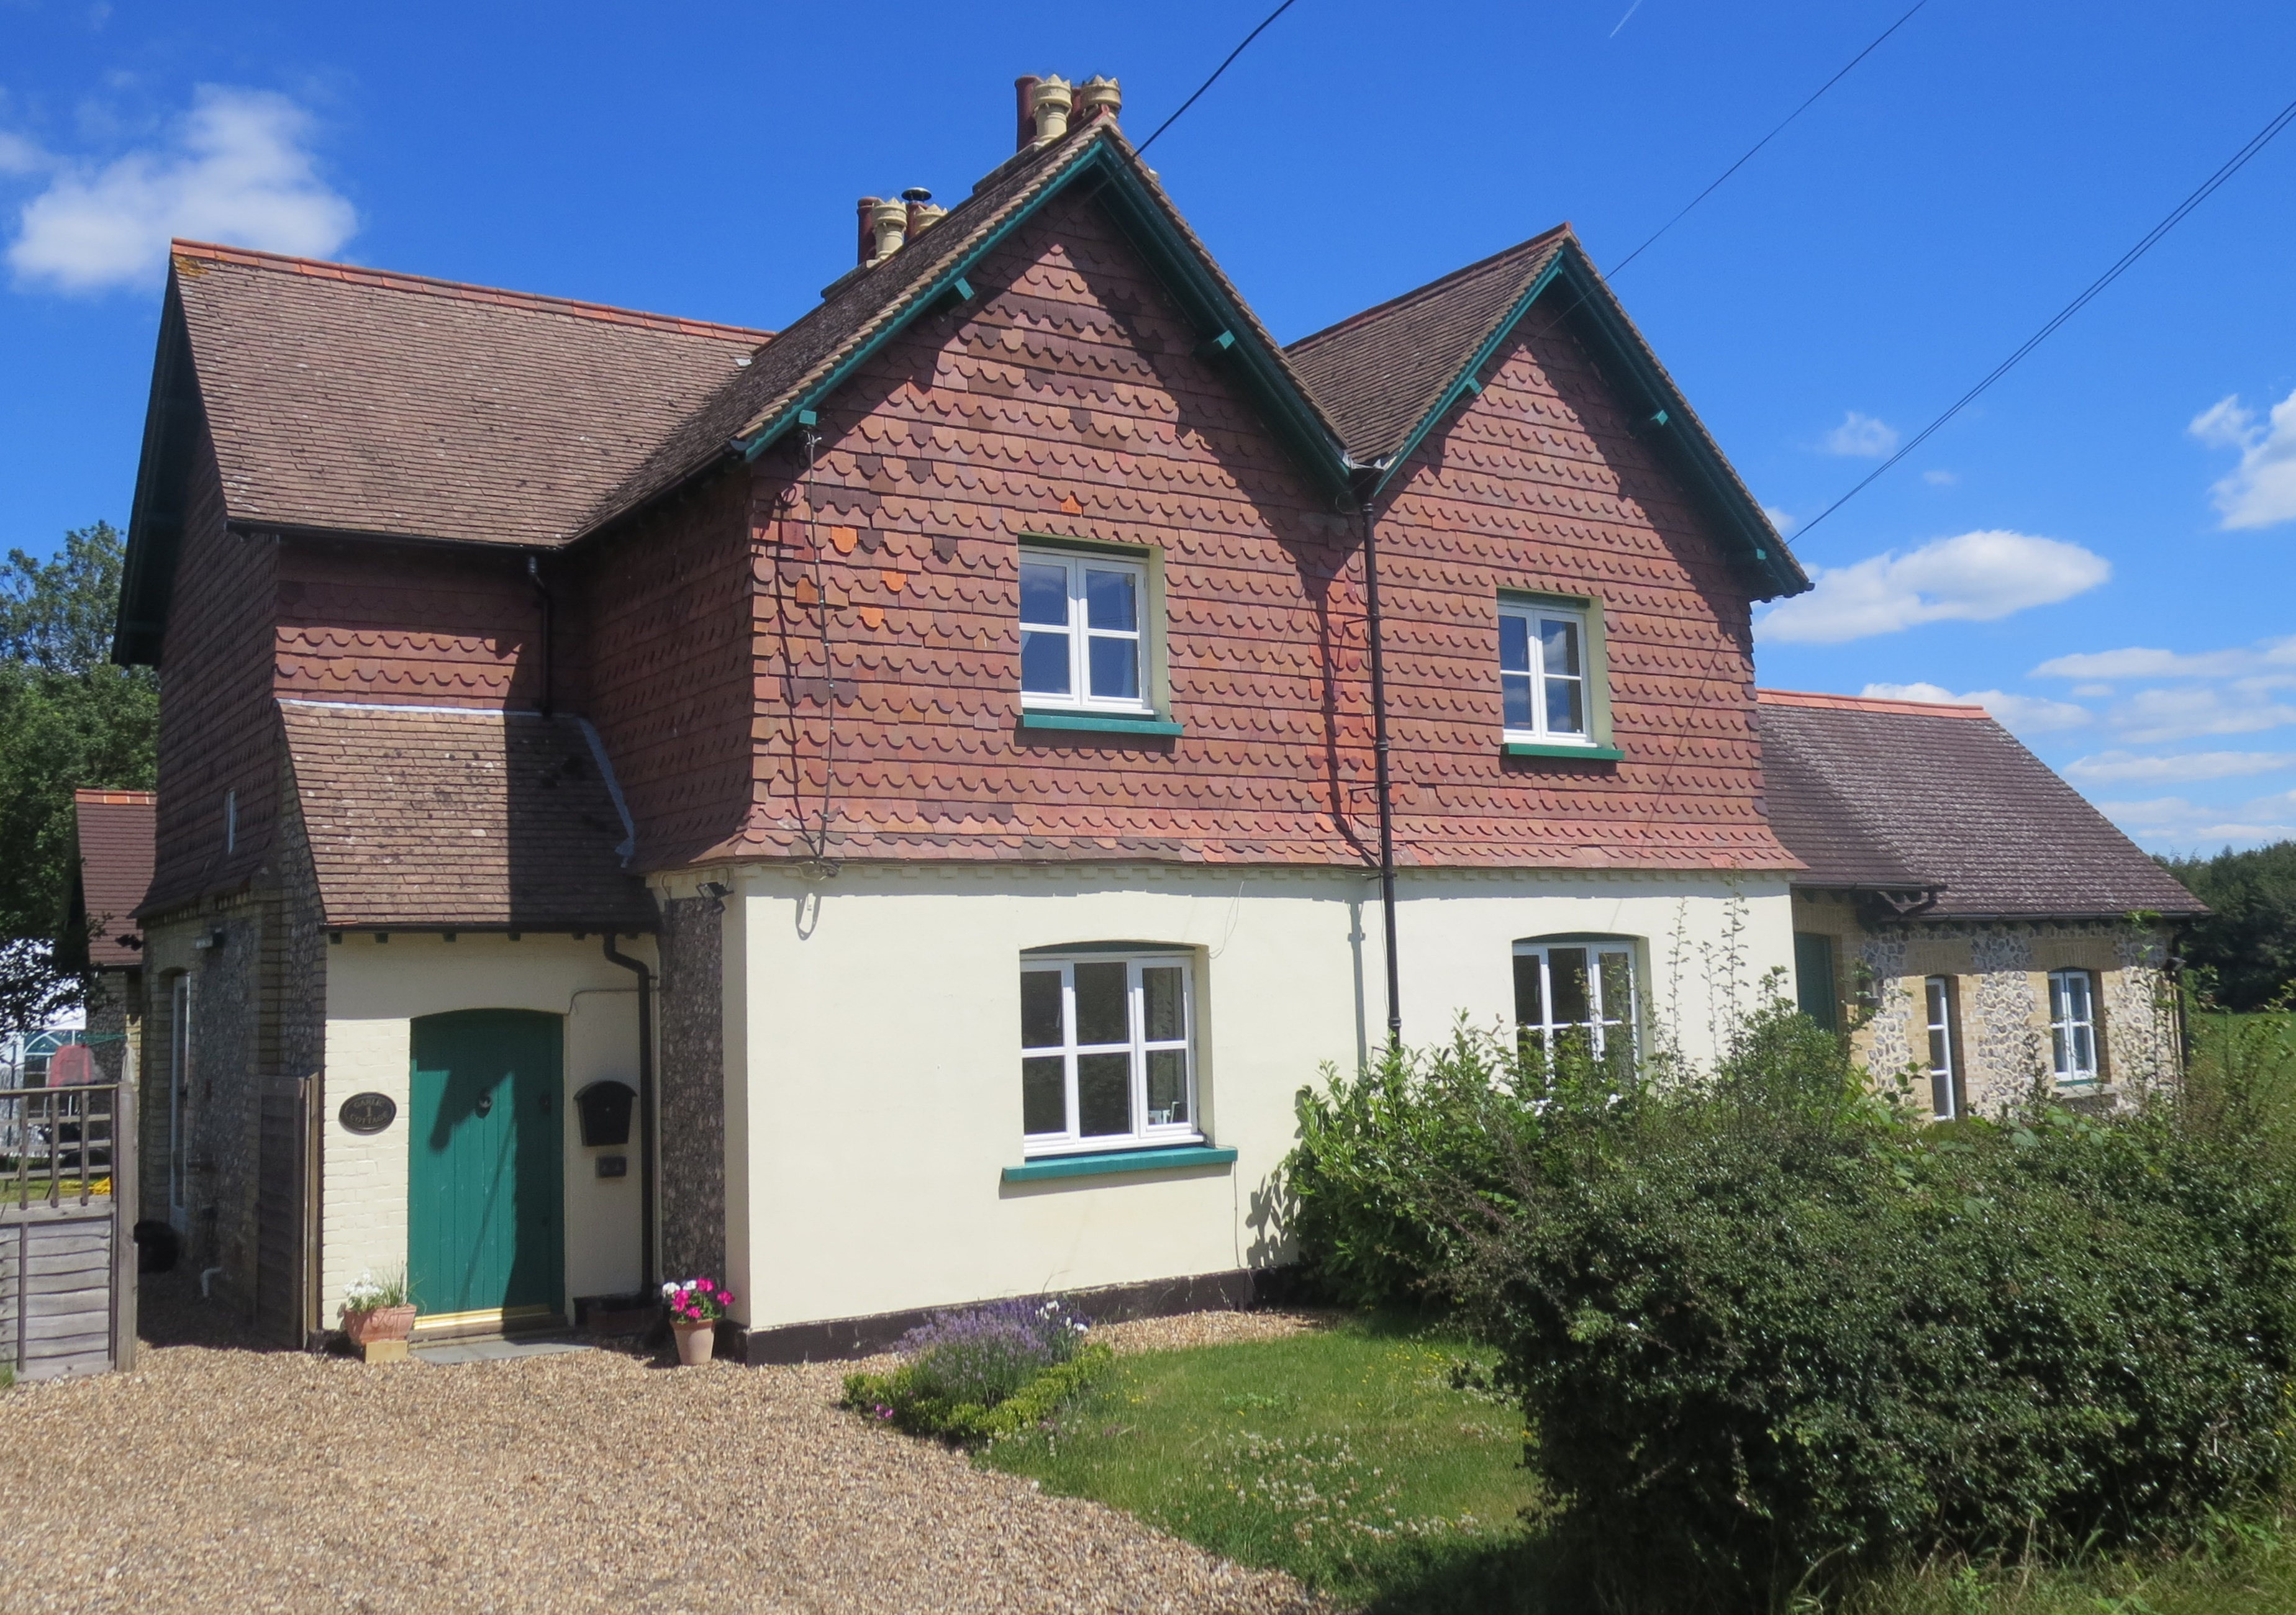 Garlic Cottages today No 1, on the left,usually seems to have been the Estate blacksmith's house. In 1891 the right hand cottage was the home of Annie Adelaide and James (No 2)